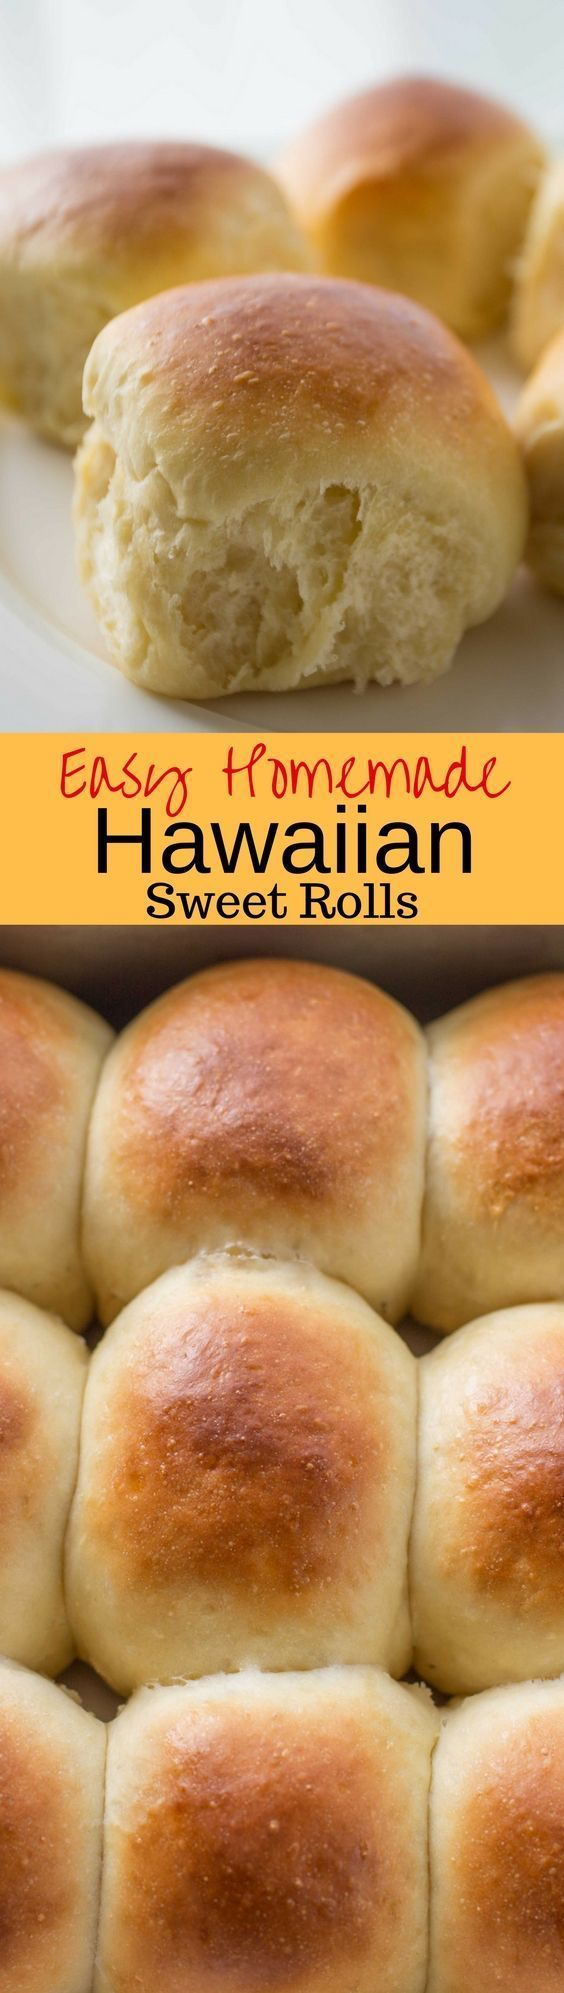 Easy Homemade Hawaiian Sweet Rolls -A lightly sweet roll flavored with pineapple juice for a hearty, fluffy, homemade treat that comes together in minutes. Terrific topped with ham, hot pepper jelly and your favorite cheese | http://www.savingdessert.com